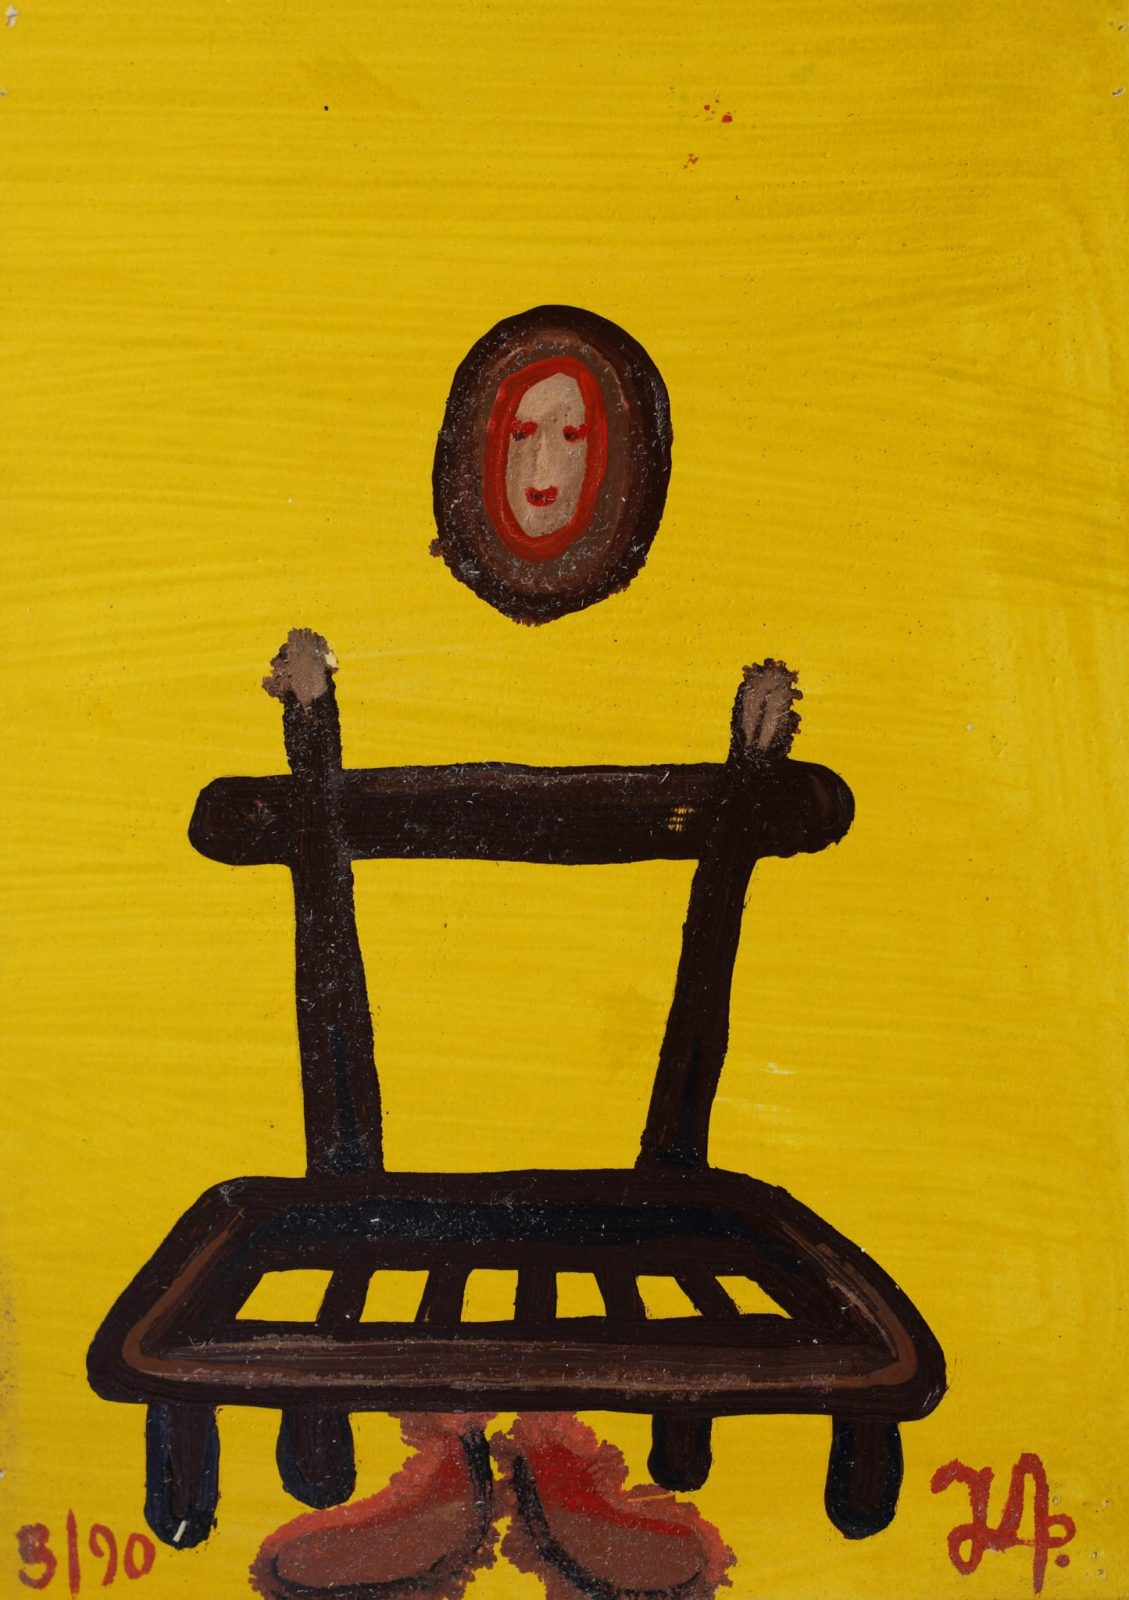 Man & Chair | Yellow #6